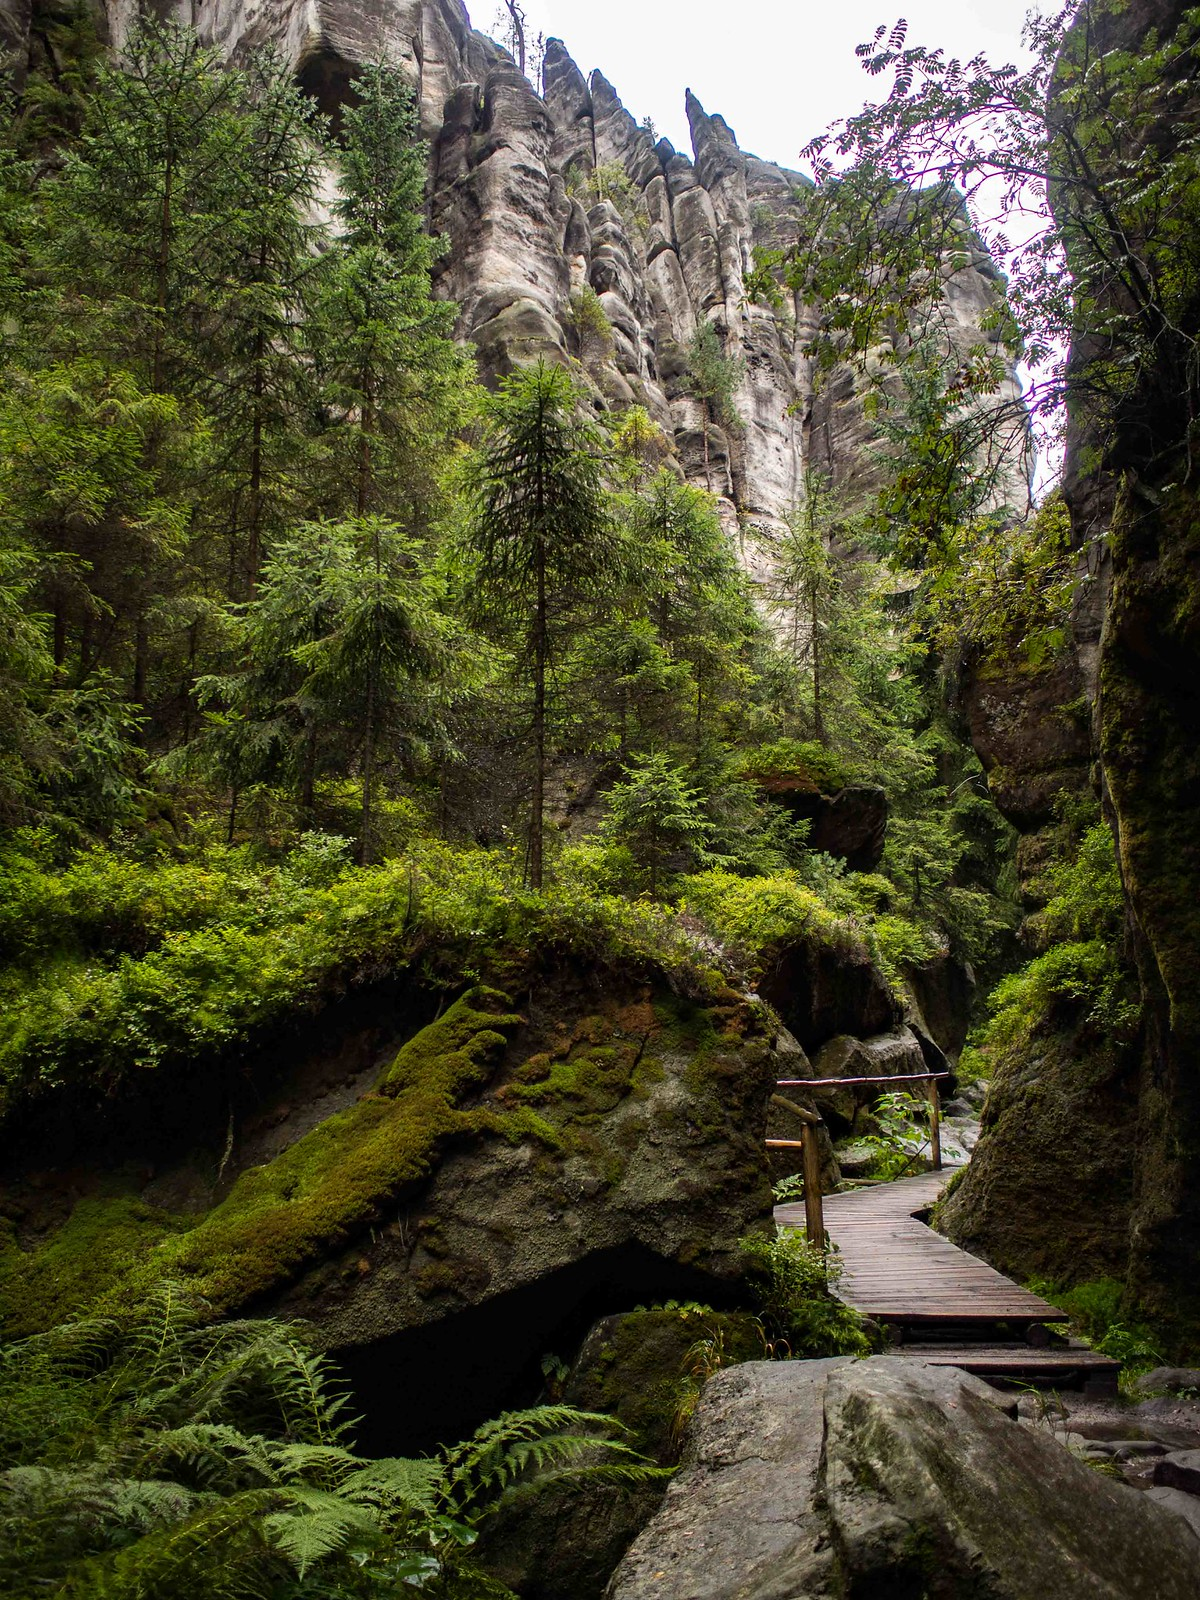 The most stunning hiking trails in the Czech Republic: Adrspach-Teplice Rock Towns